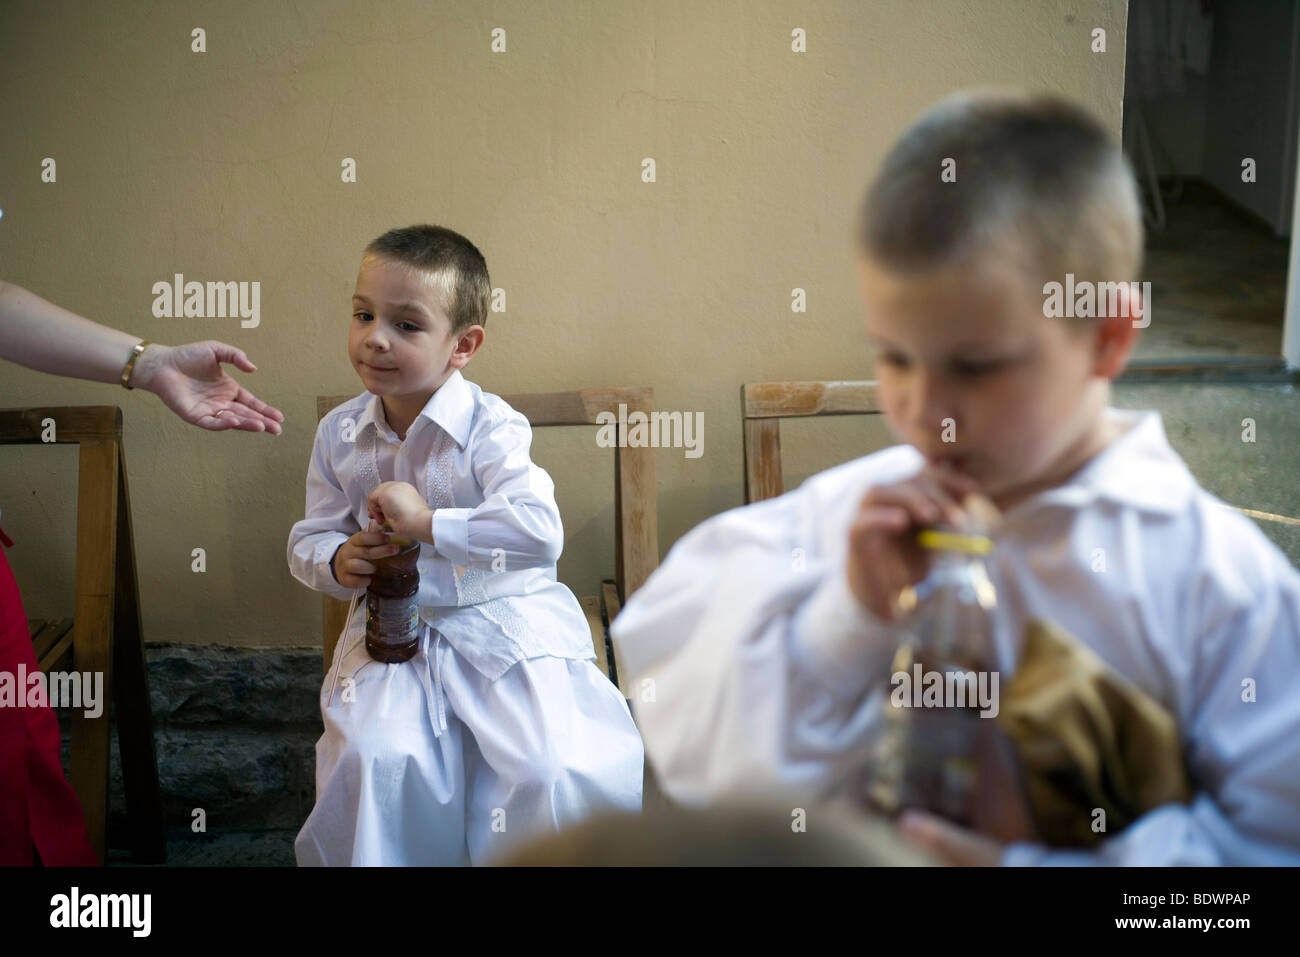 Boys backstage in traditional costume drink soda from bottles during a folk event in Pecs, Hungary. - Stock Image